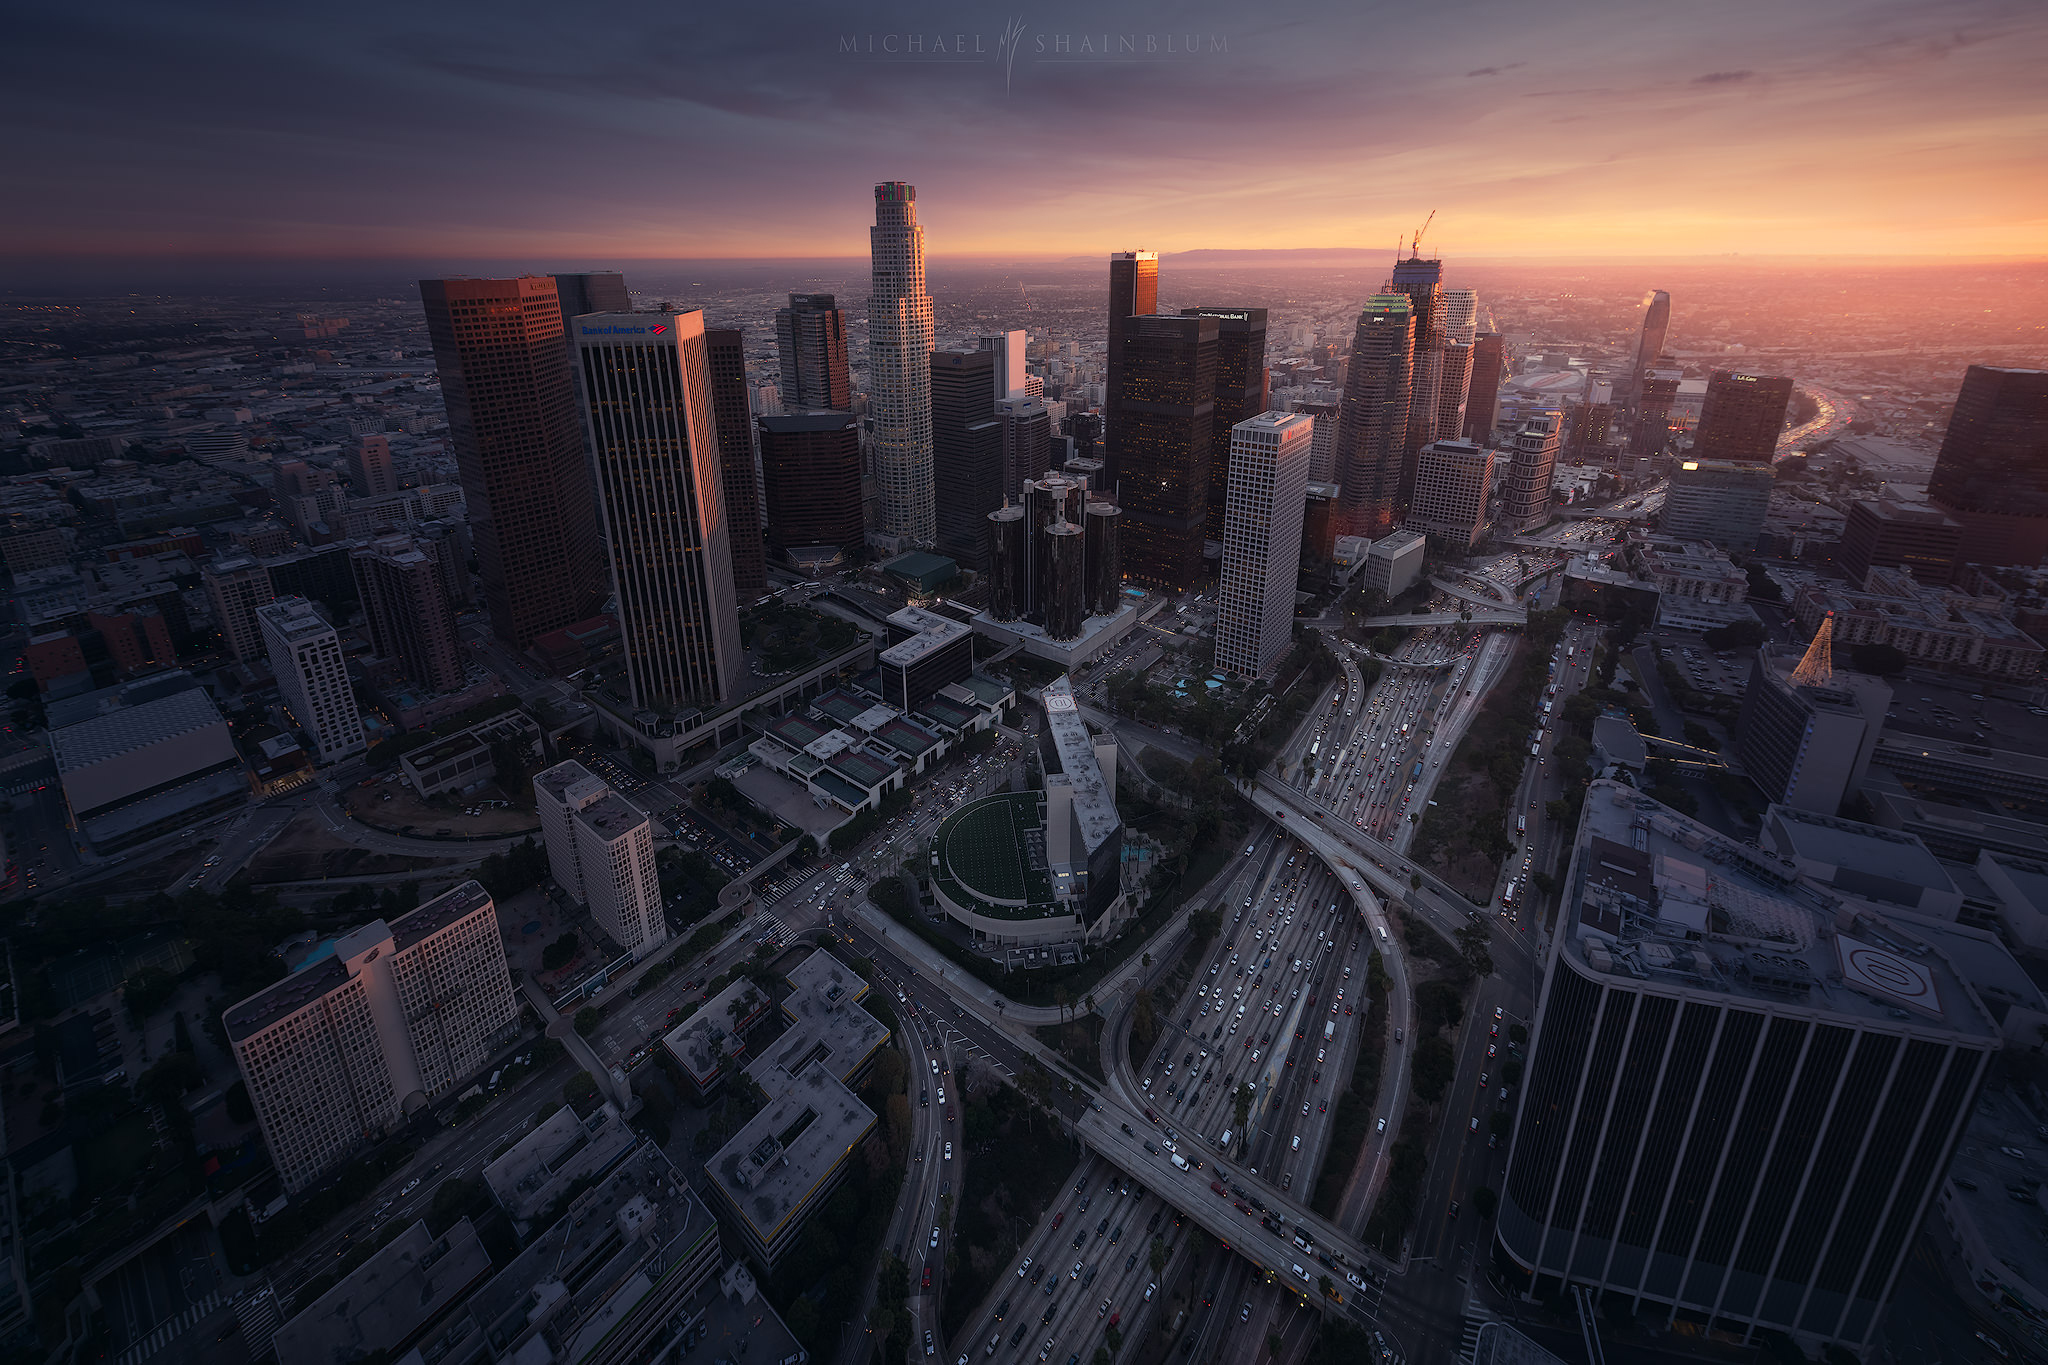 Downtown Los Angeles aerial at sunset.